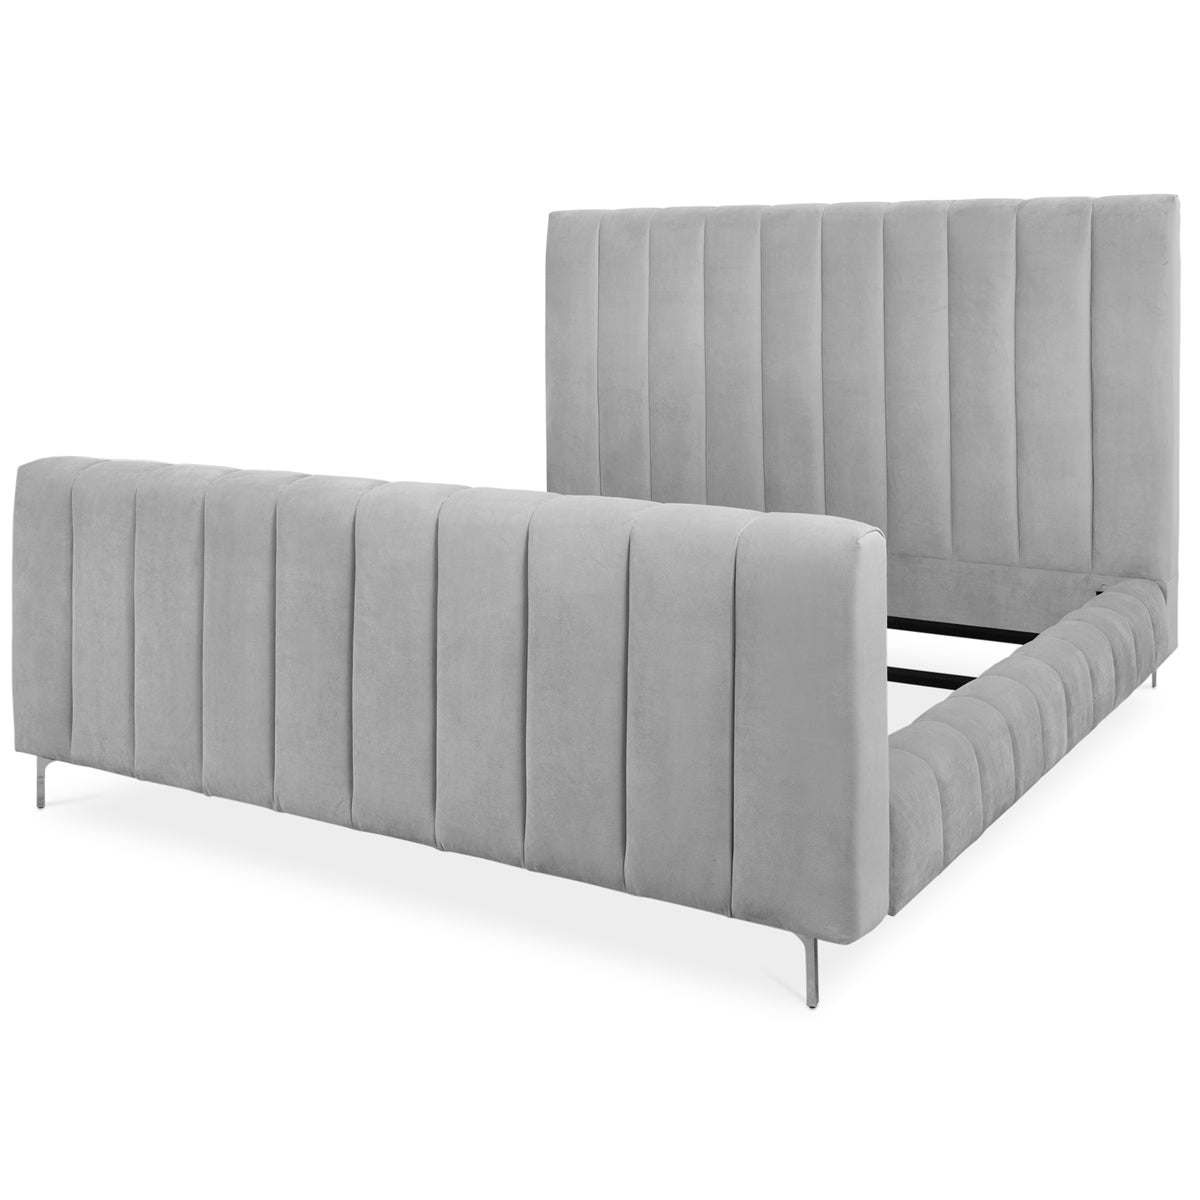 Shoreclub Bed with Footboard - ModShop1.com